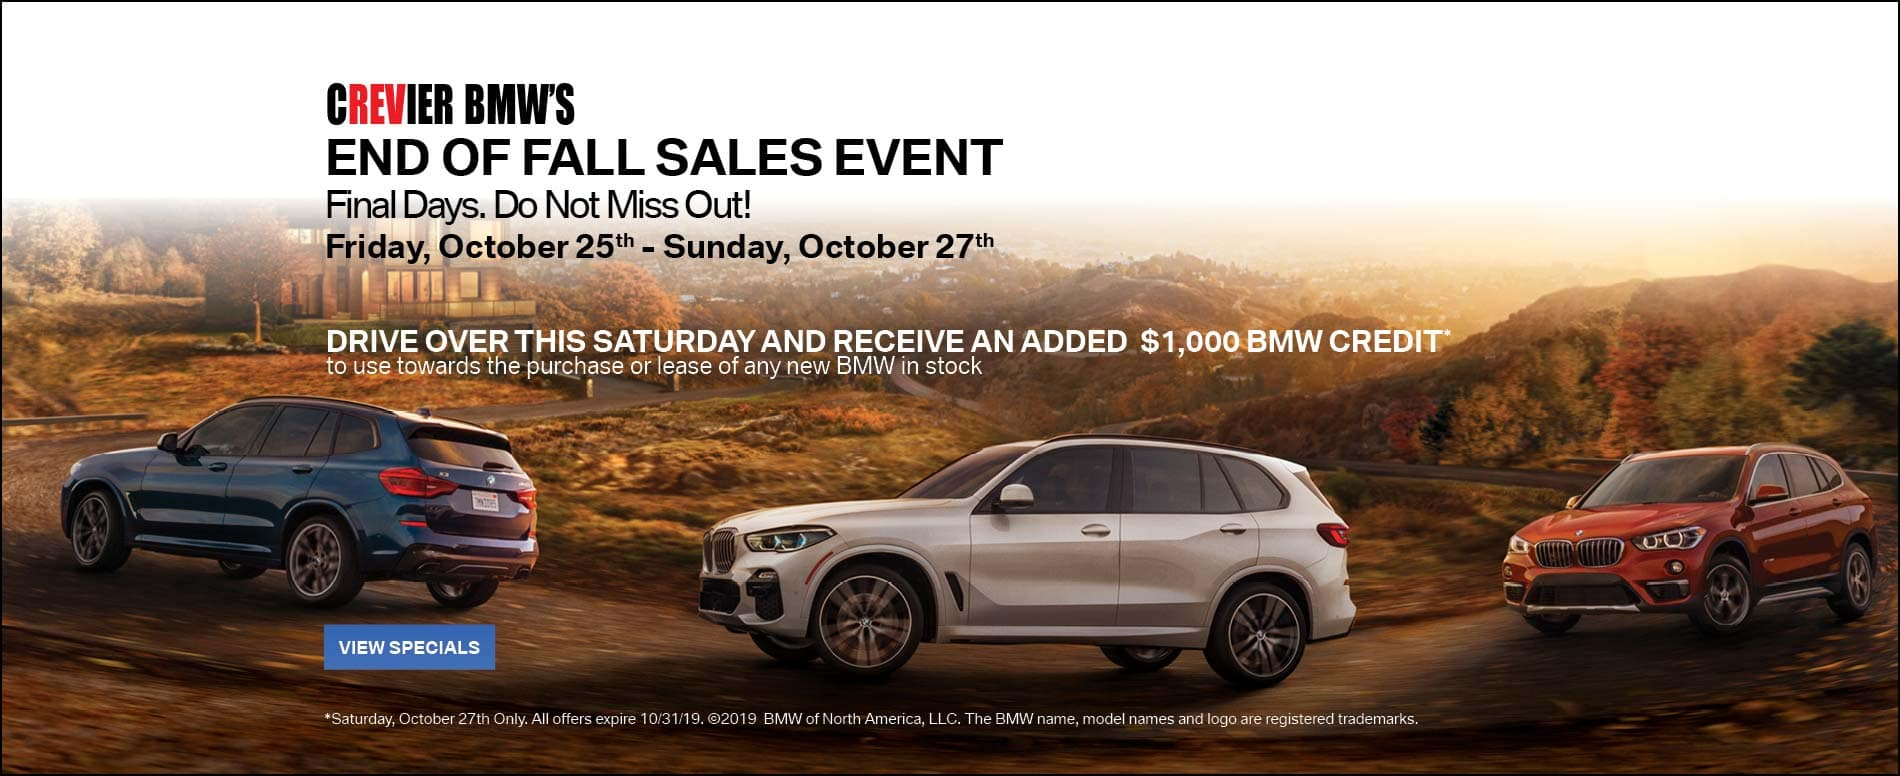 Crevier BMW End of Fall Sales Event